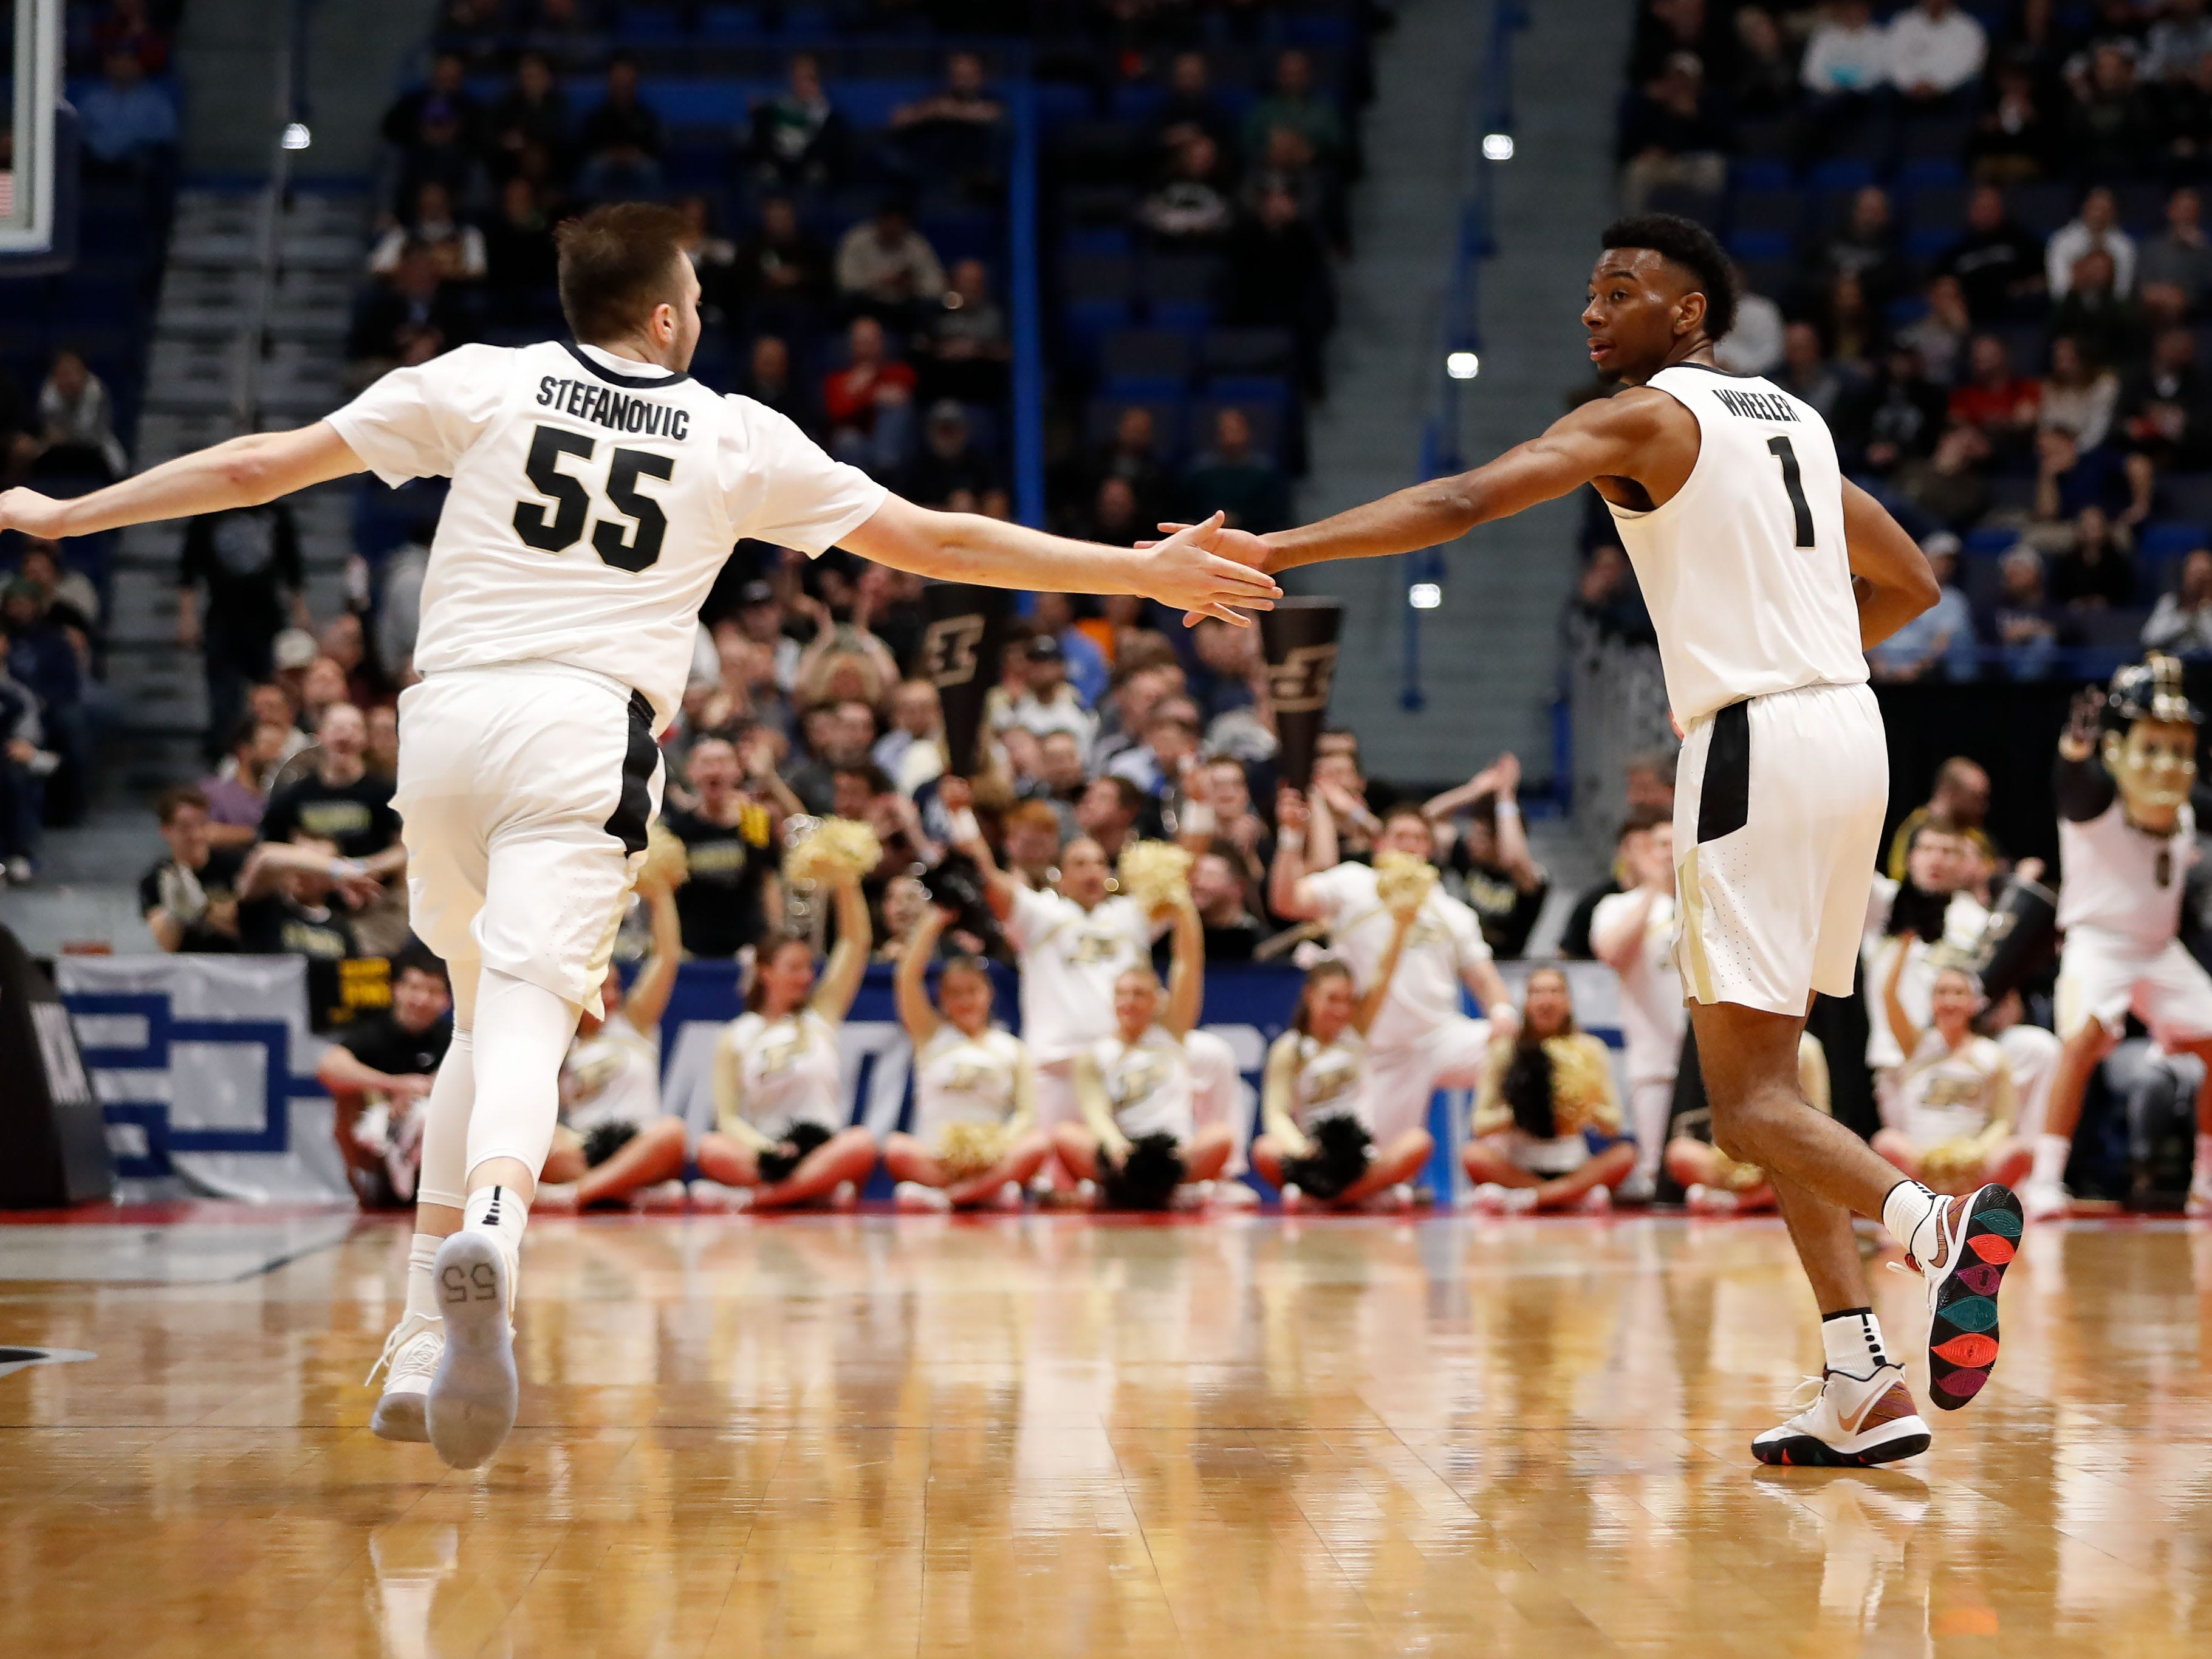 Mar 21, 2019; Hartford, CT, USA; Purdue Boilermakers guard Sasha Stefanovic (55) and forward Aaron Wheeler (1) high five during the first half of a game against the Old Dominion Monarchs in the first round of the 2019 NCAA Tournament at XL Center. Mandatory Credit: David Butler II-USA TODAY Sports